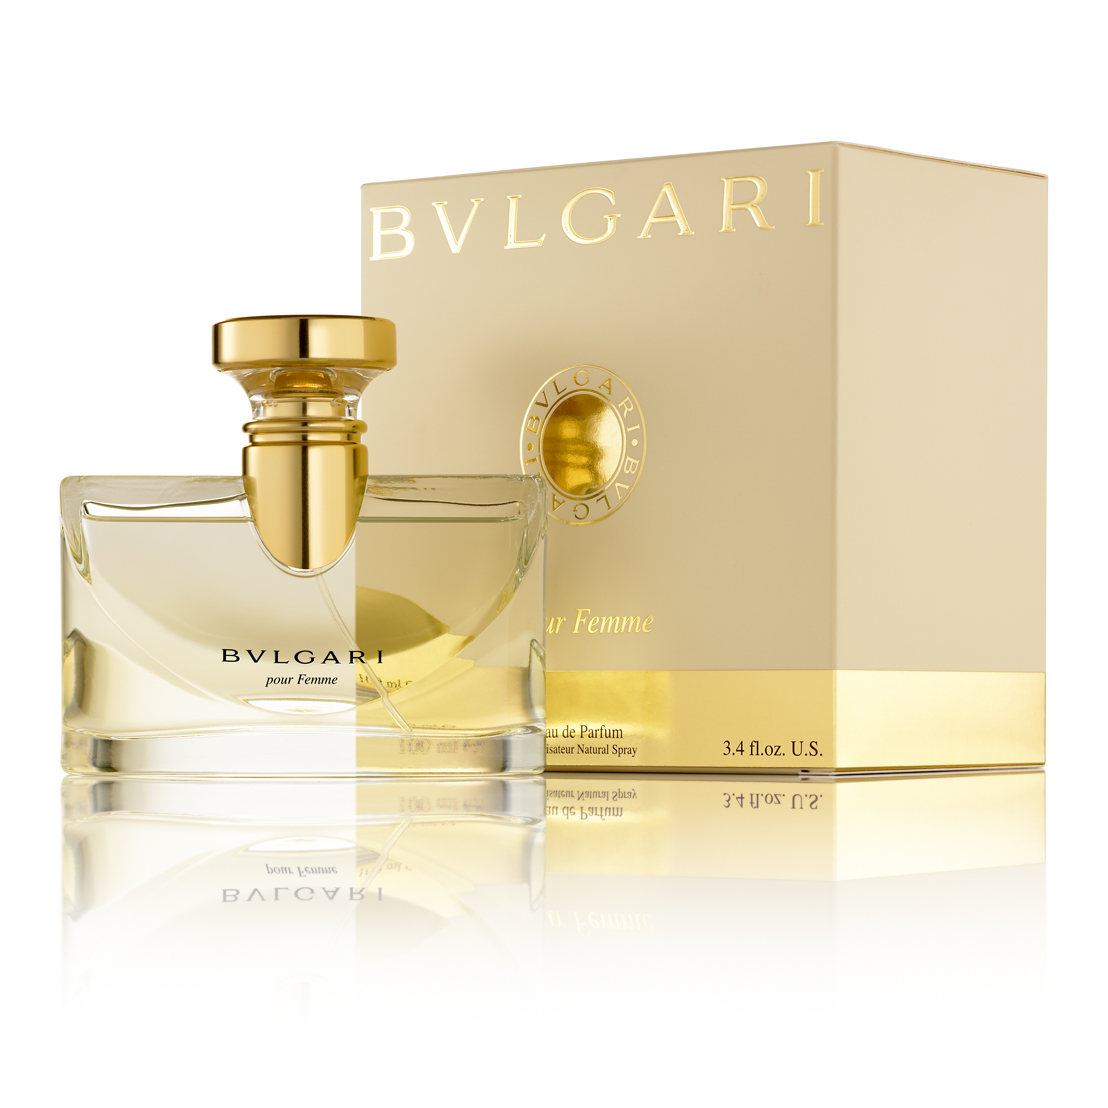 peace bridge duty free bvlgari pour femme edp. Black Bedroom Furniture Sets. Home Design Ideas